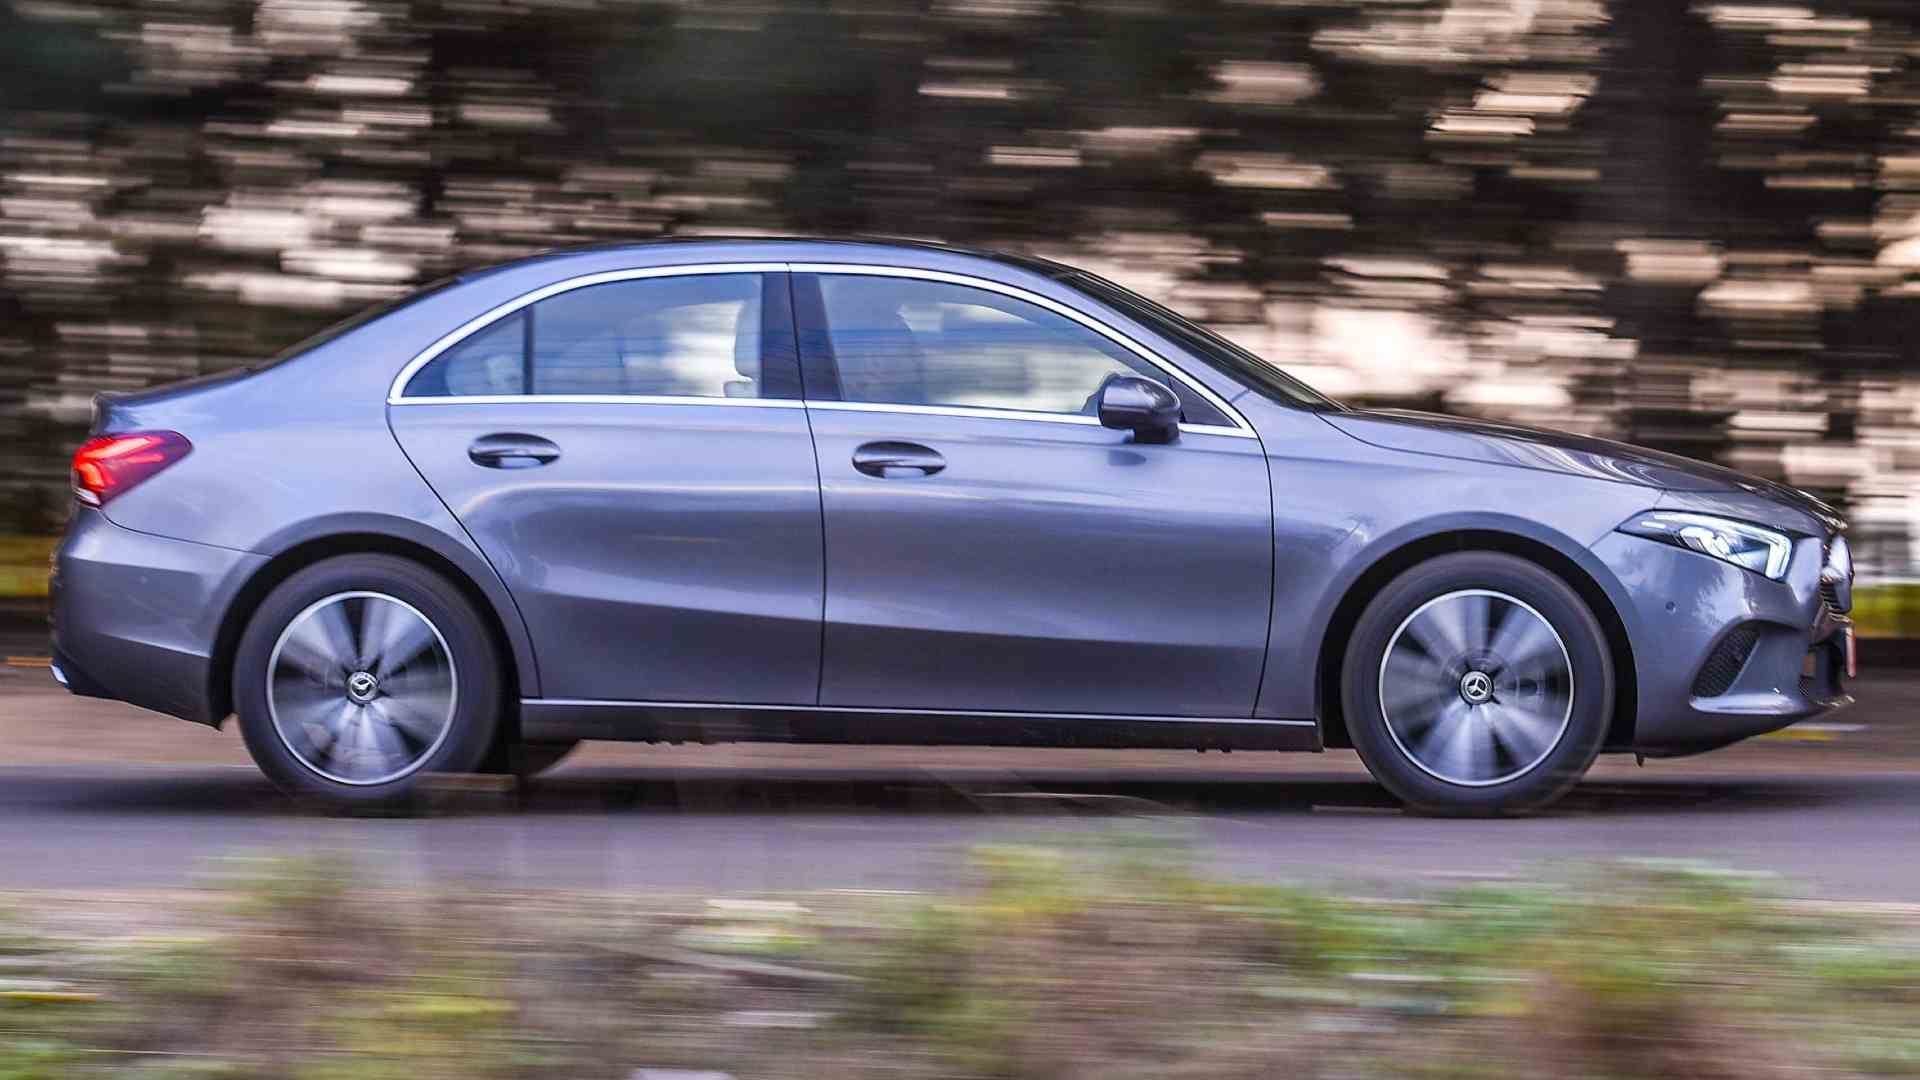 On the move, the A-Class Limousine feels agile and light on its feet. Image: Overdrive/Anis Shaikh